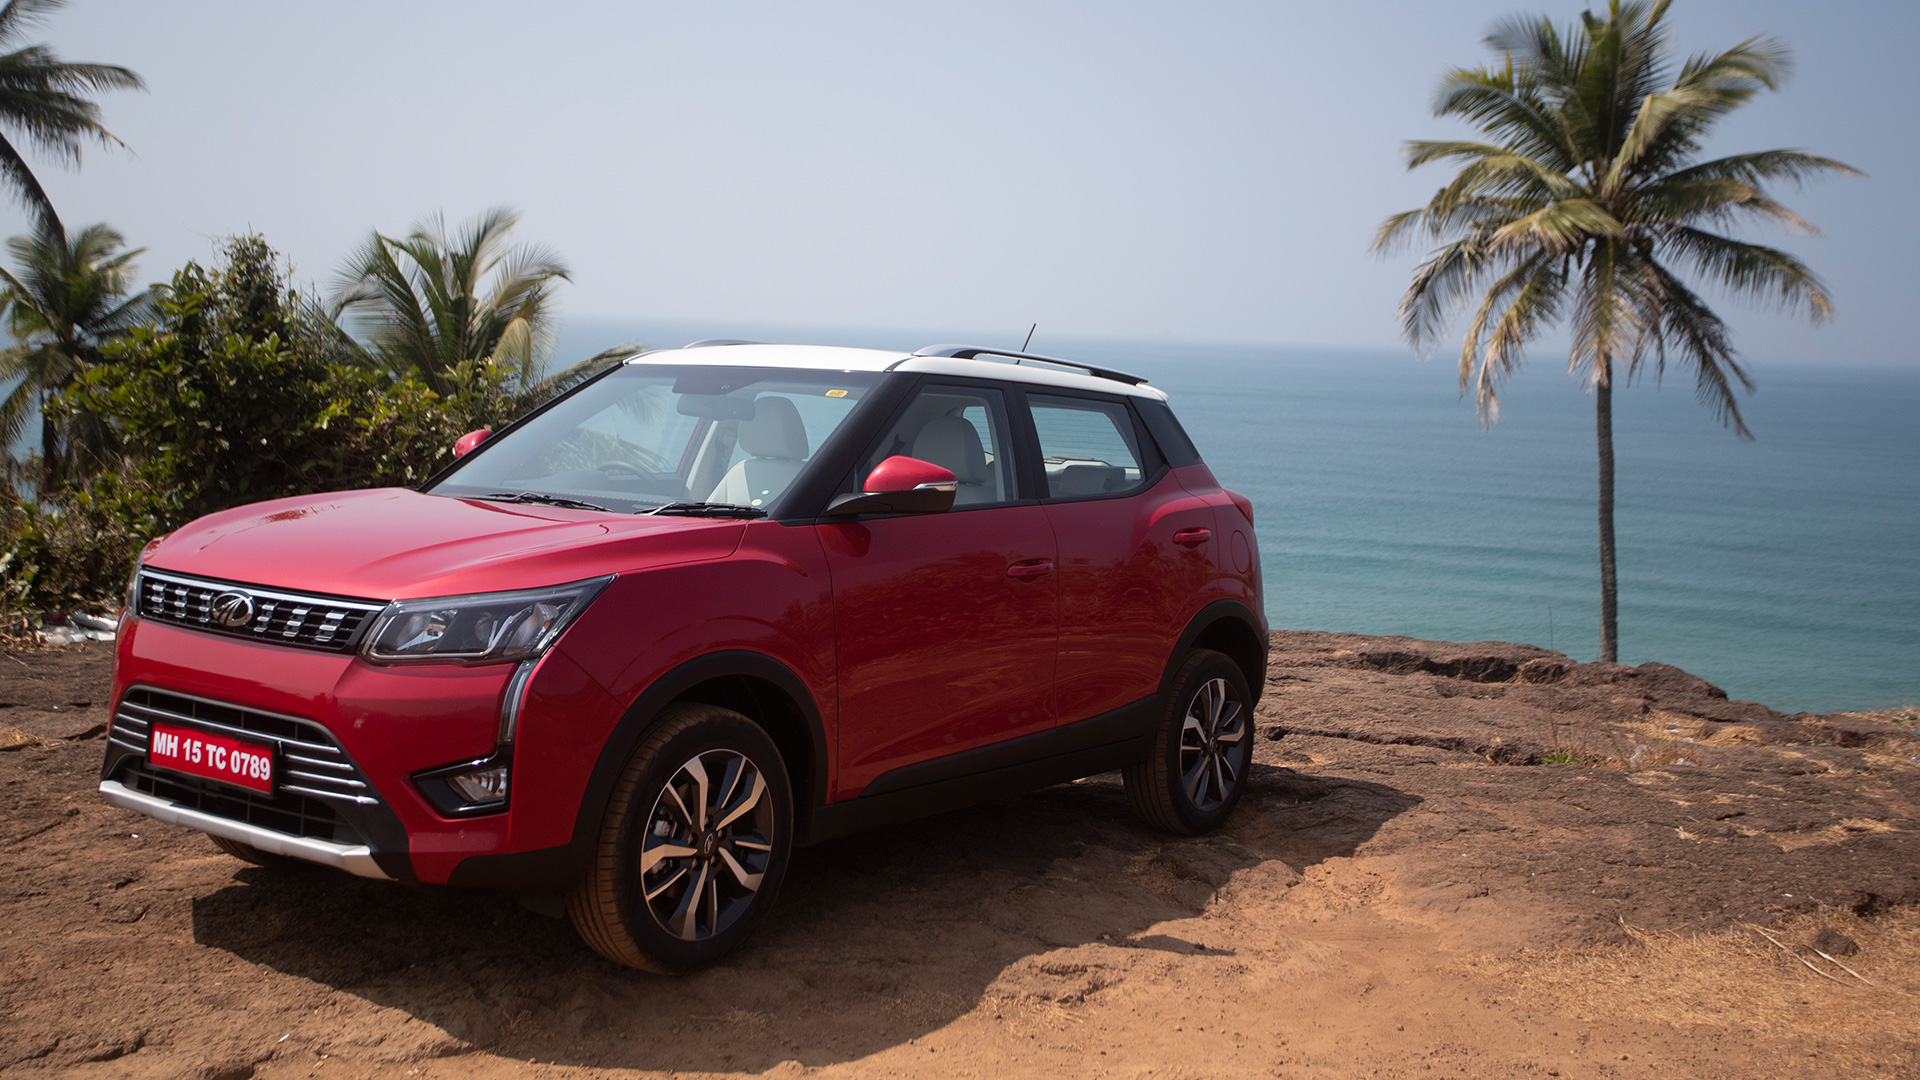 Mahindra Xuv300 2019 Price Mileage Reviews Specification